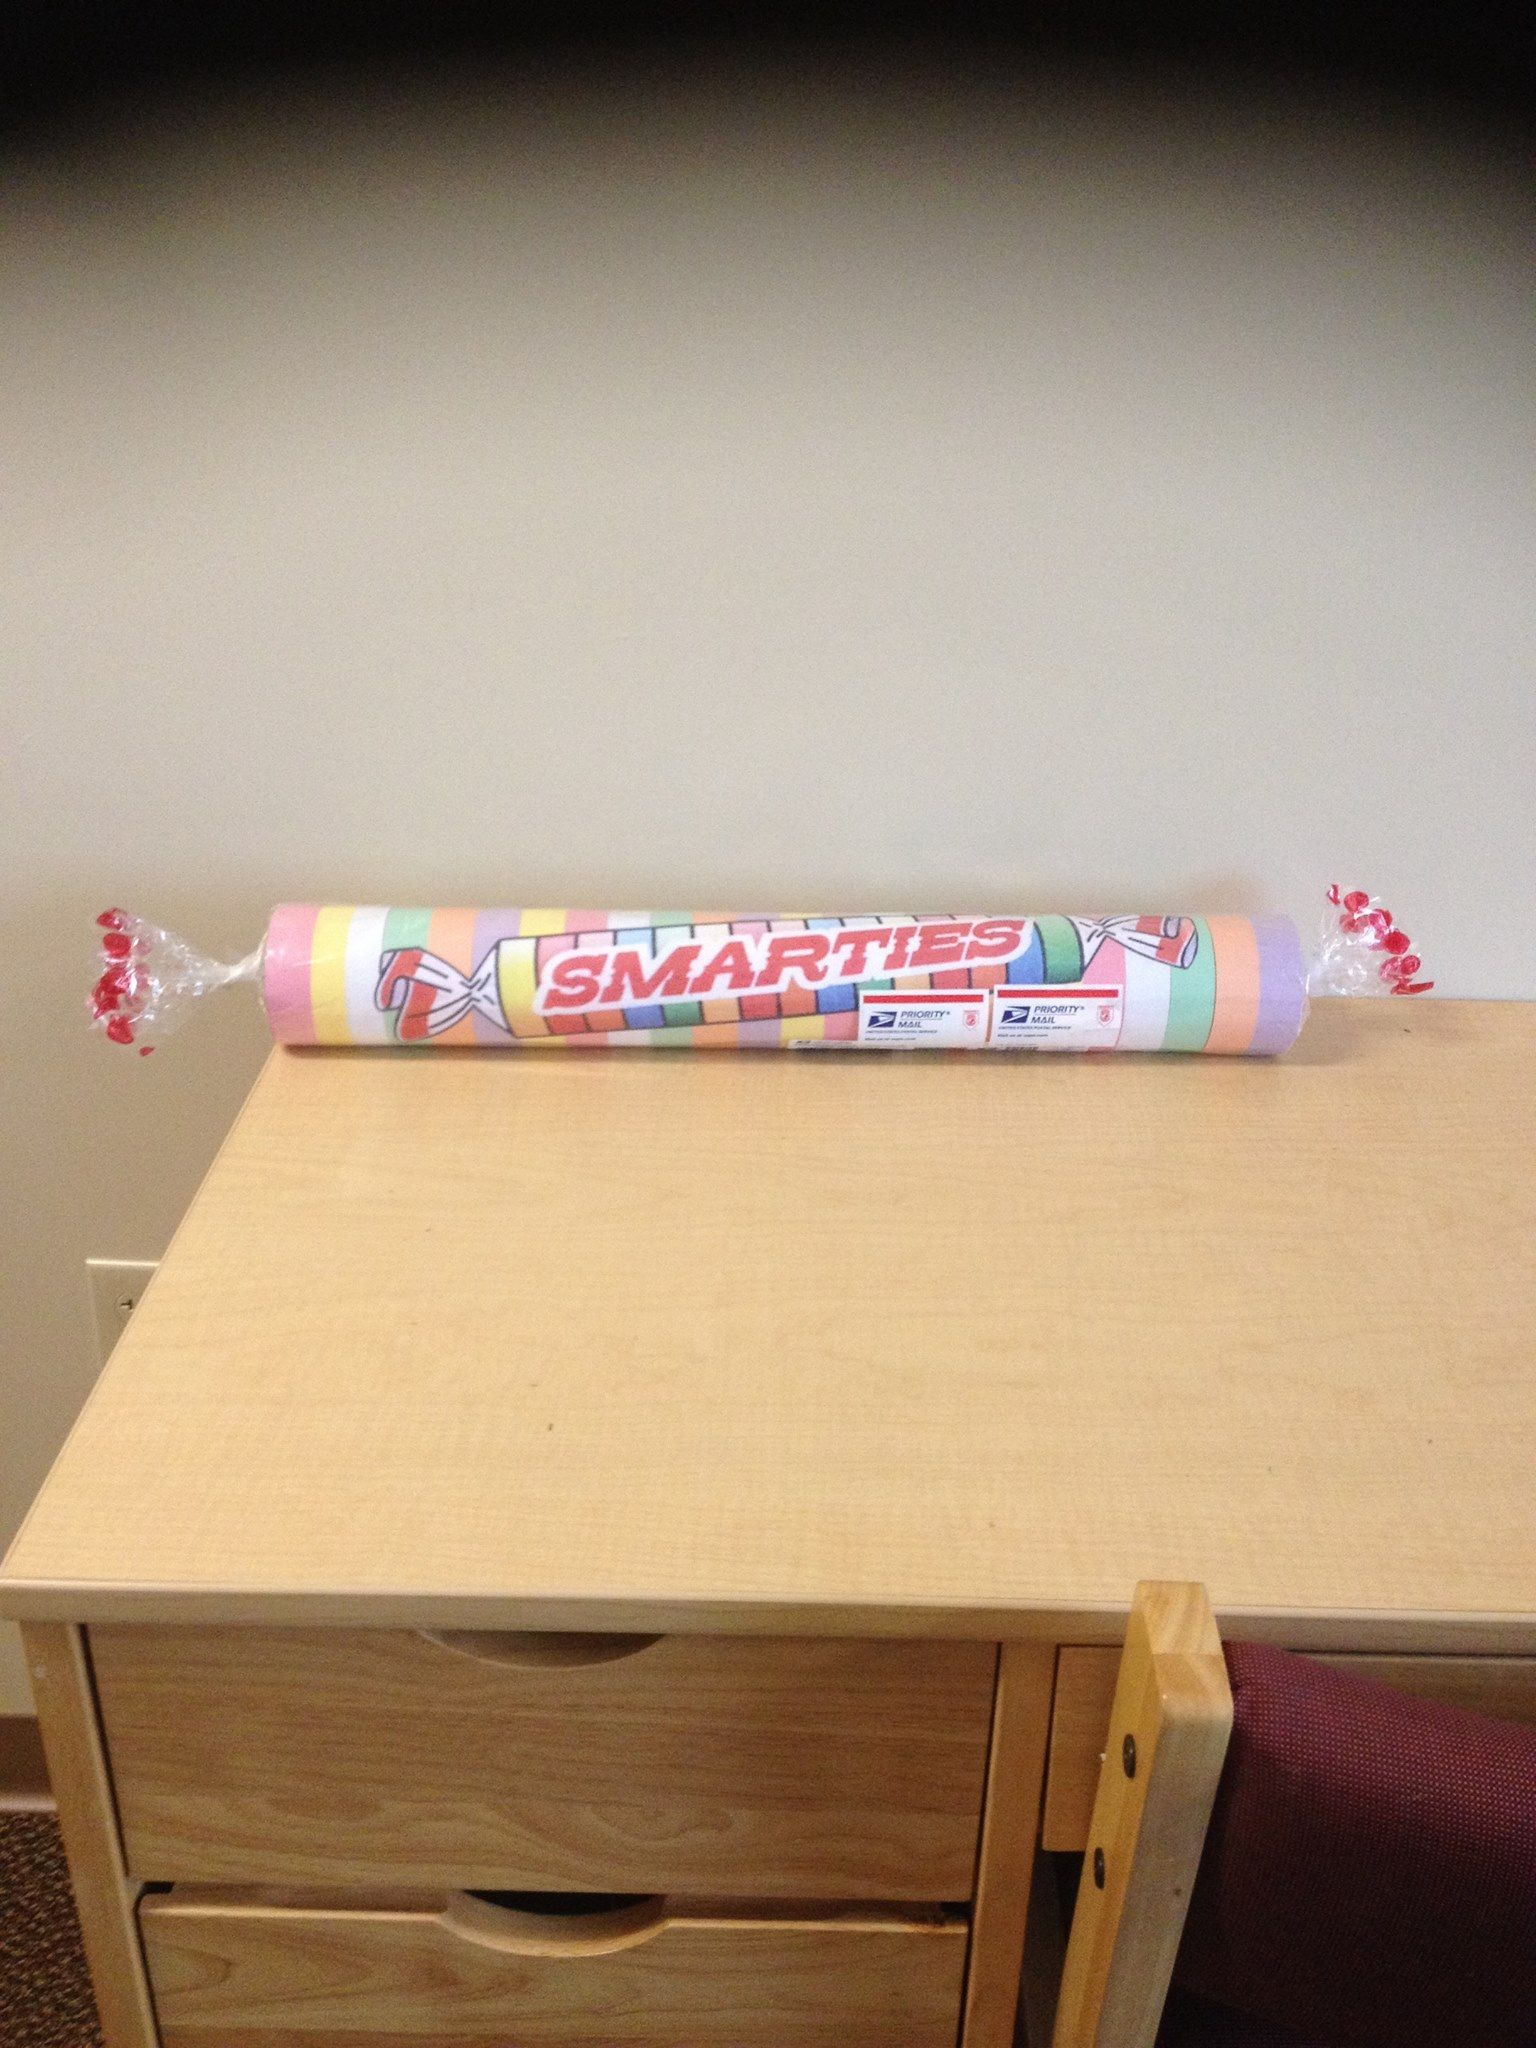 Cute care package made from mailing tube and decorated